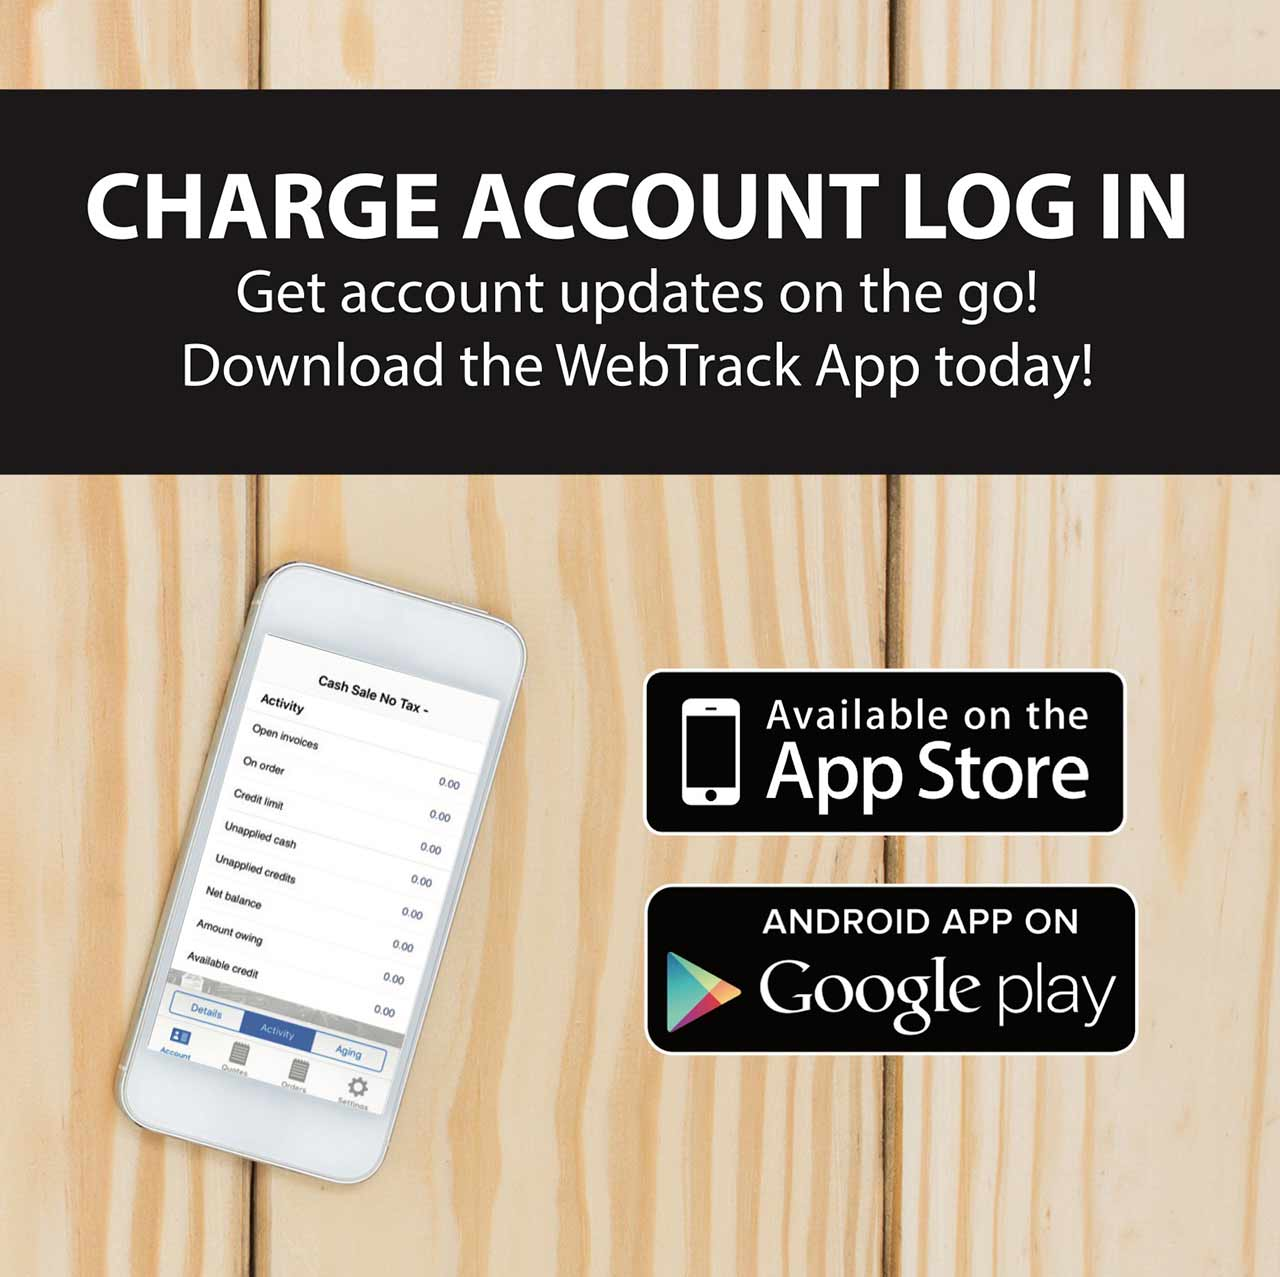 Charge Account Log In